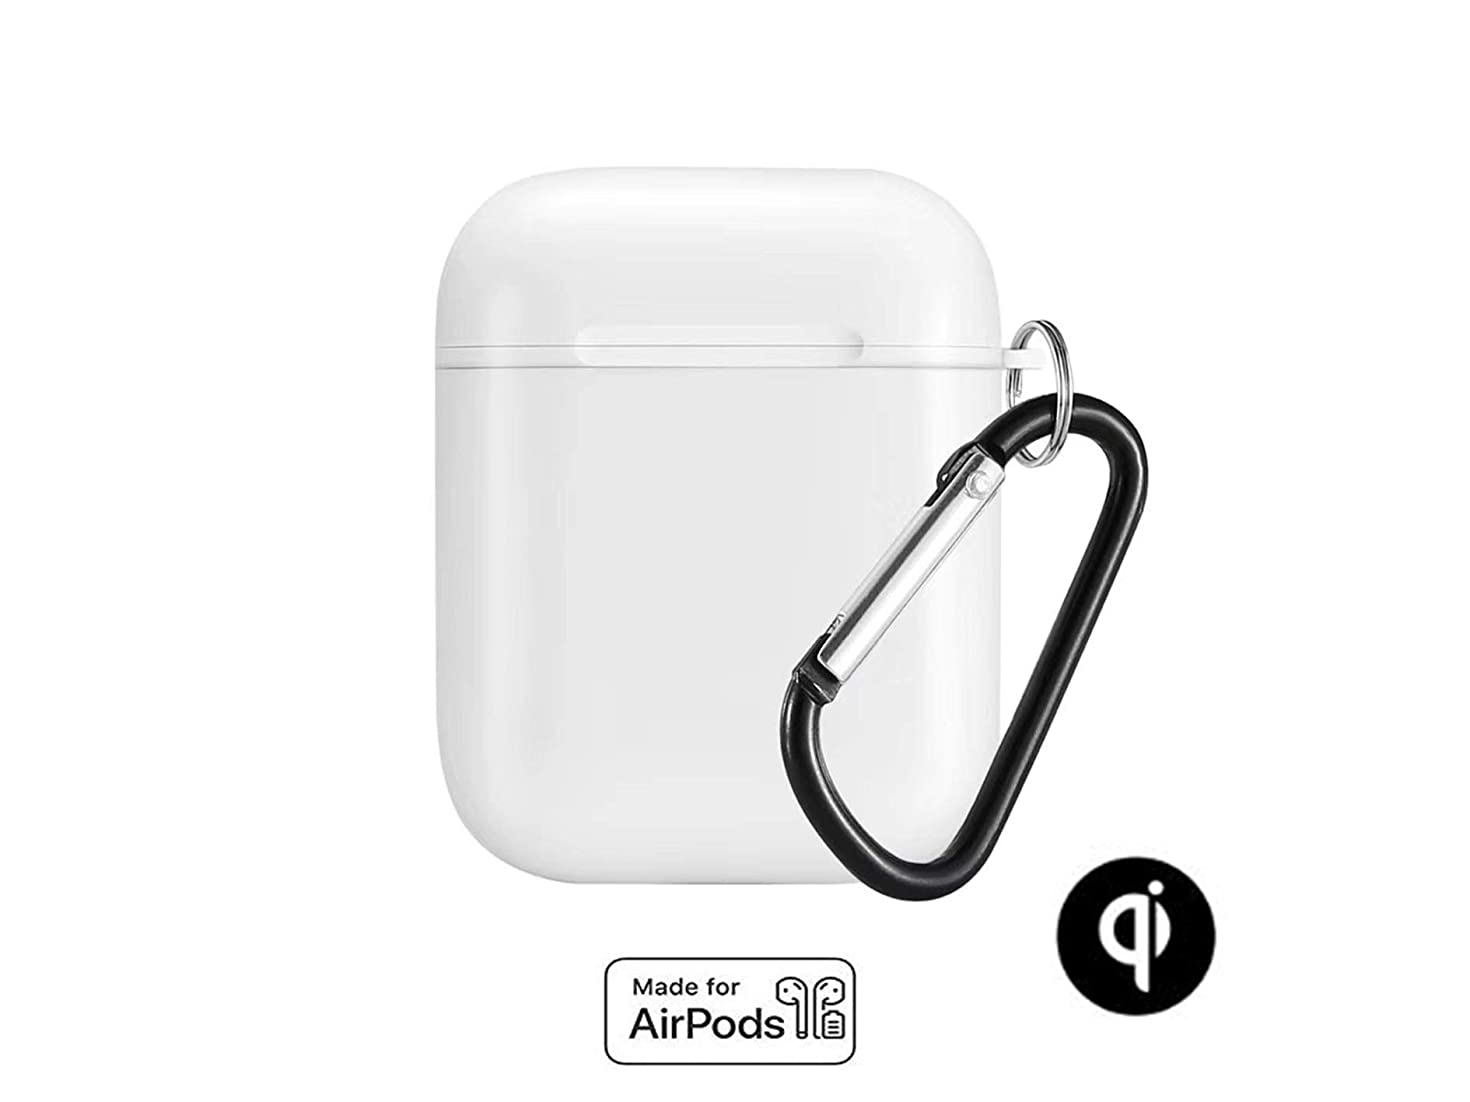 Airpods Wireless Charging Protective Case - Compatible with Any QI Charger, Lightning Adapter. Wireless Charging Case for Airpods (White)